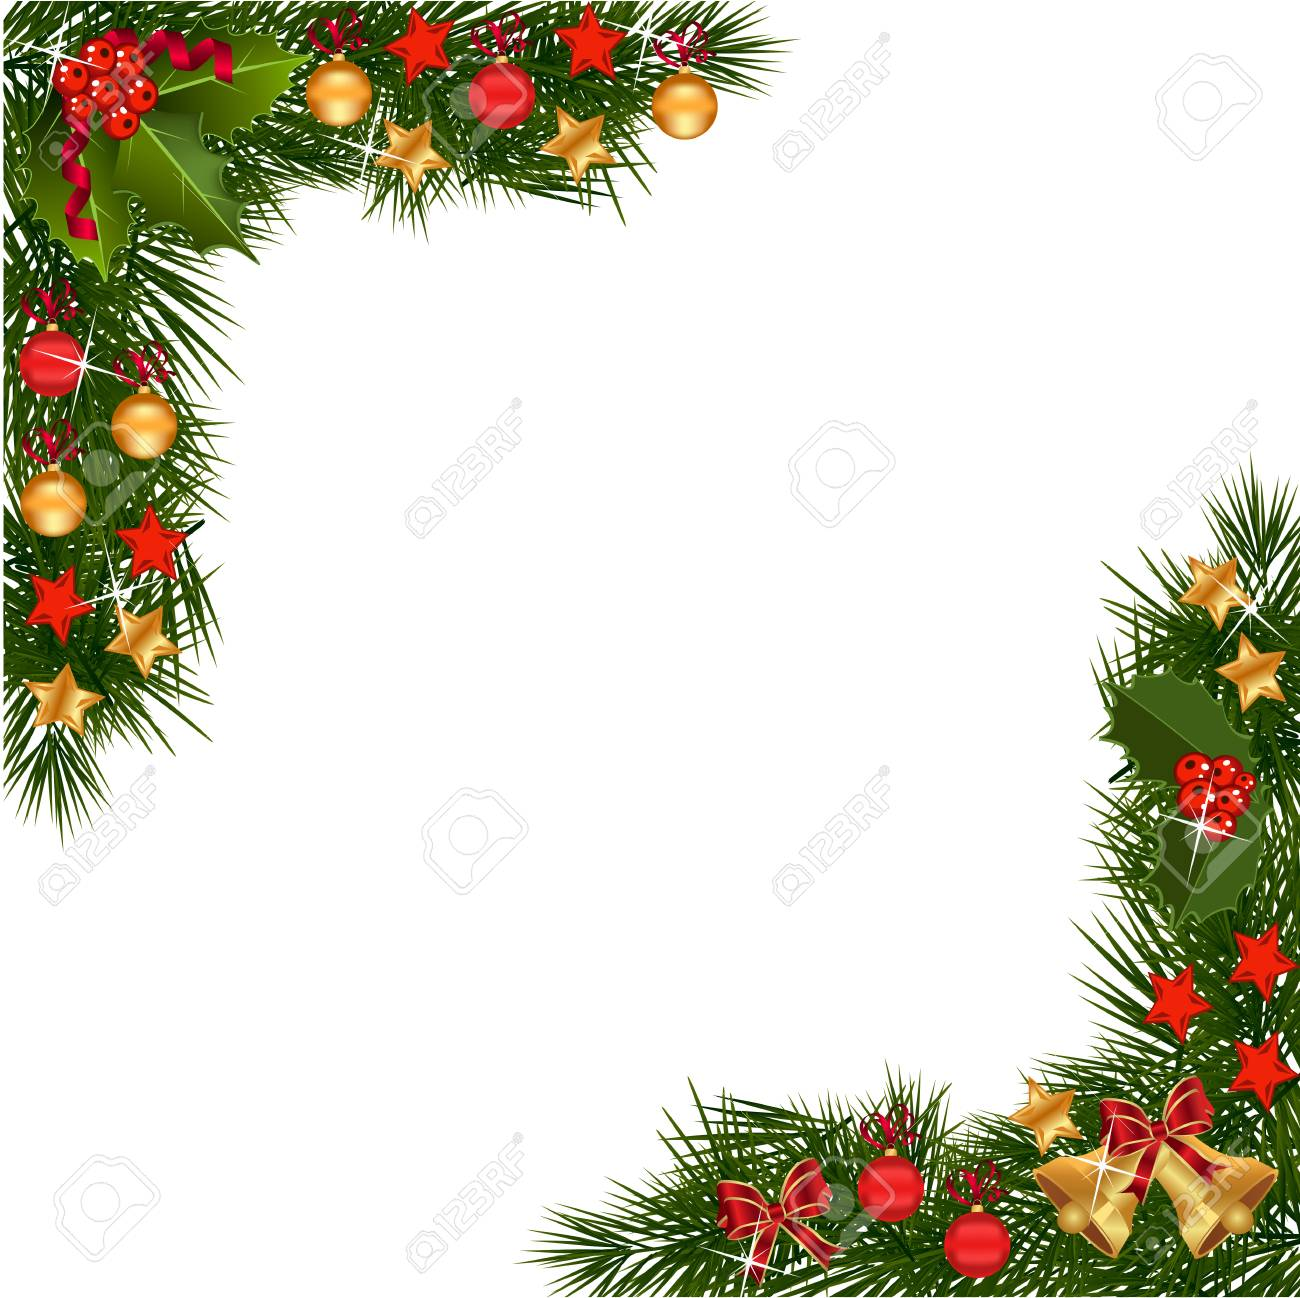 A Traditional Christmas Garland Made With Red Berries And